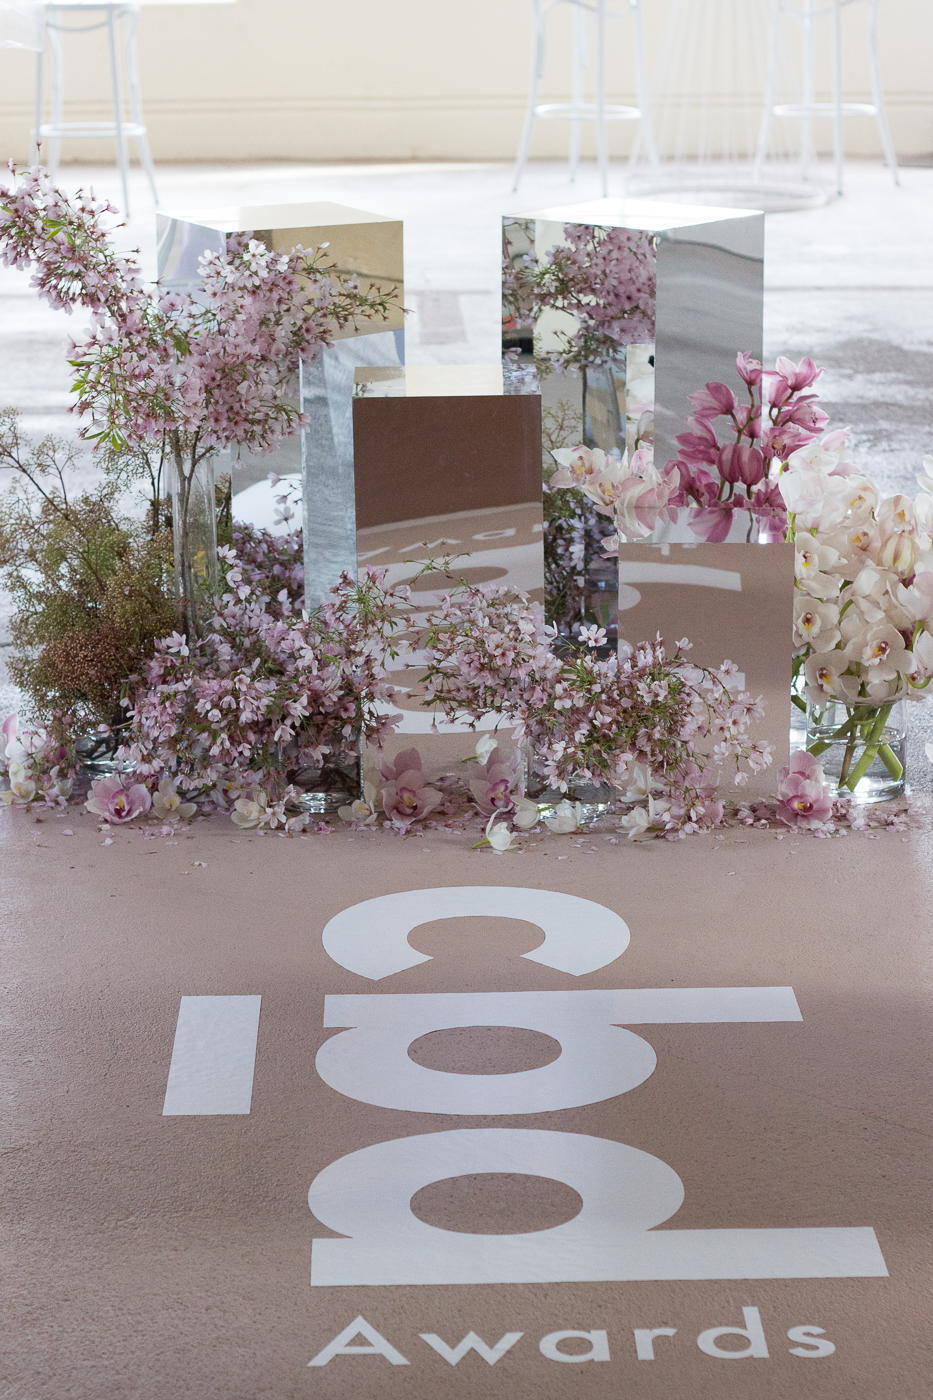 On My Hand Florist - event styling for CBD awards in Hamilton floral decorations